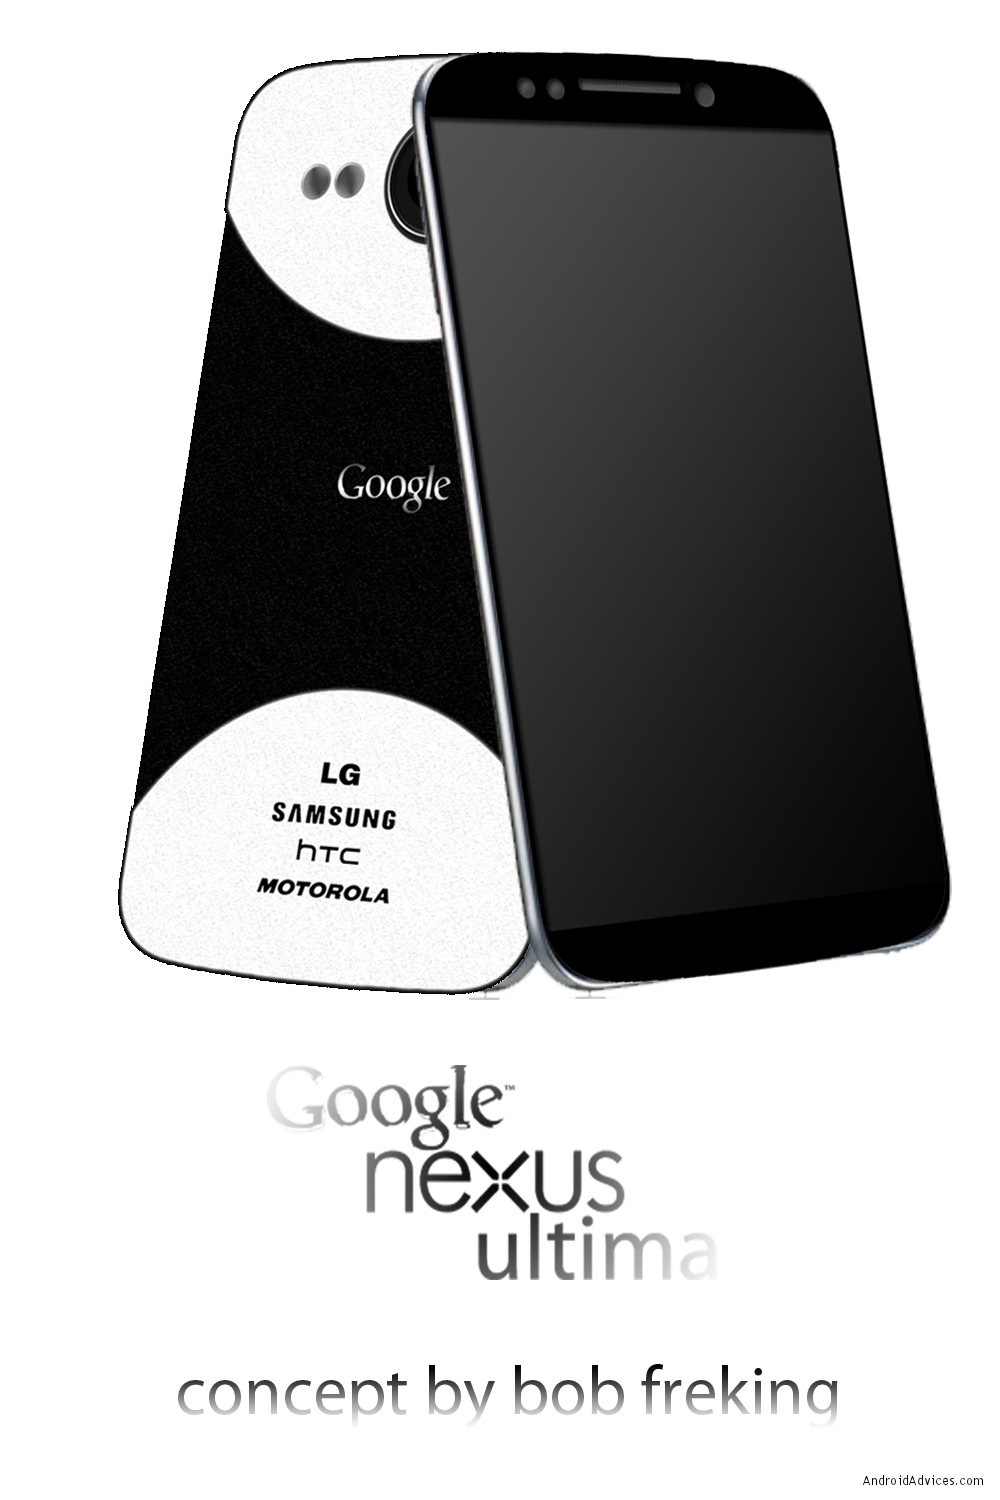 Google Nexus Ultima